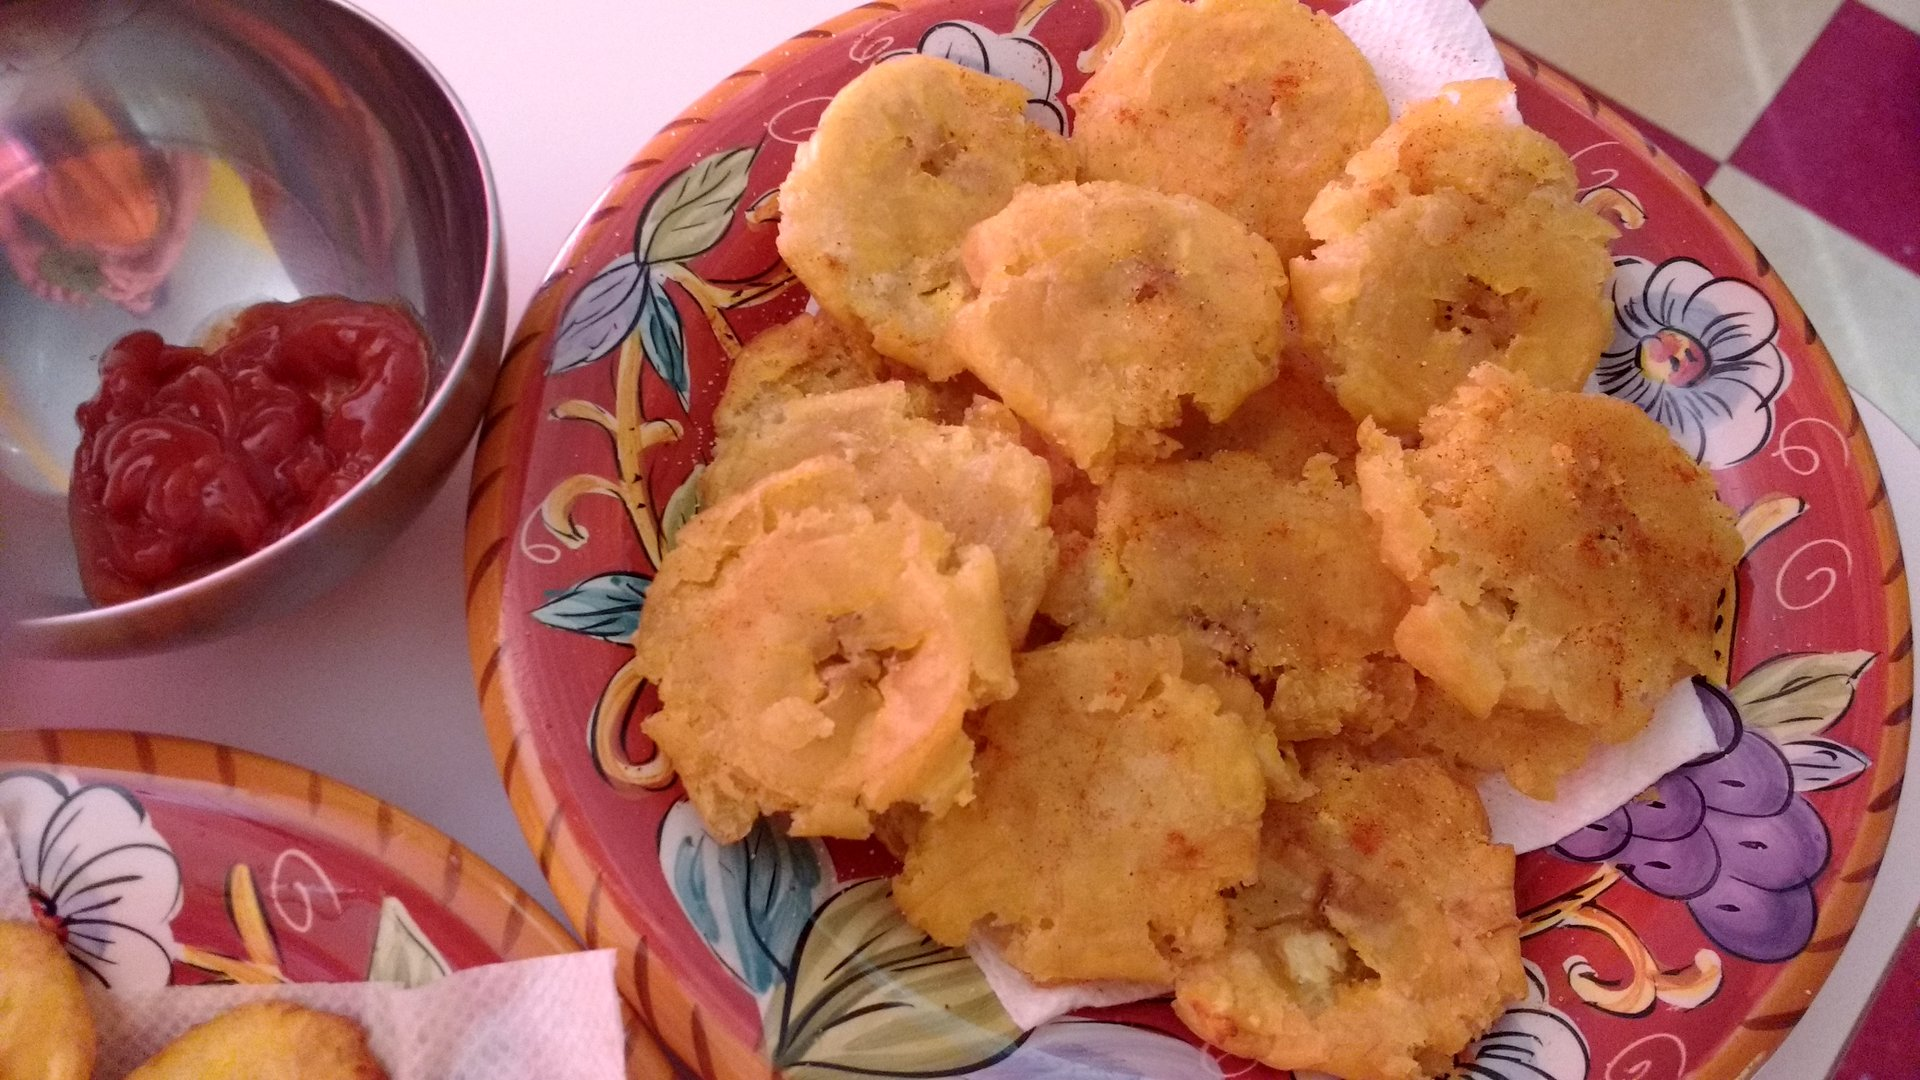 A plate filled with Patacones (unripe, fried plantains)